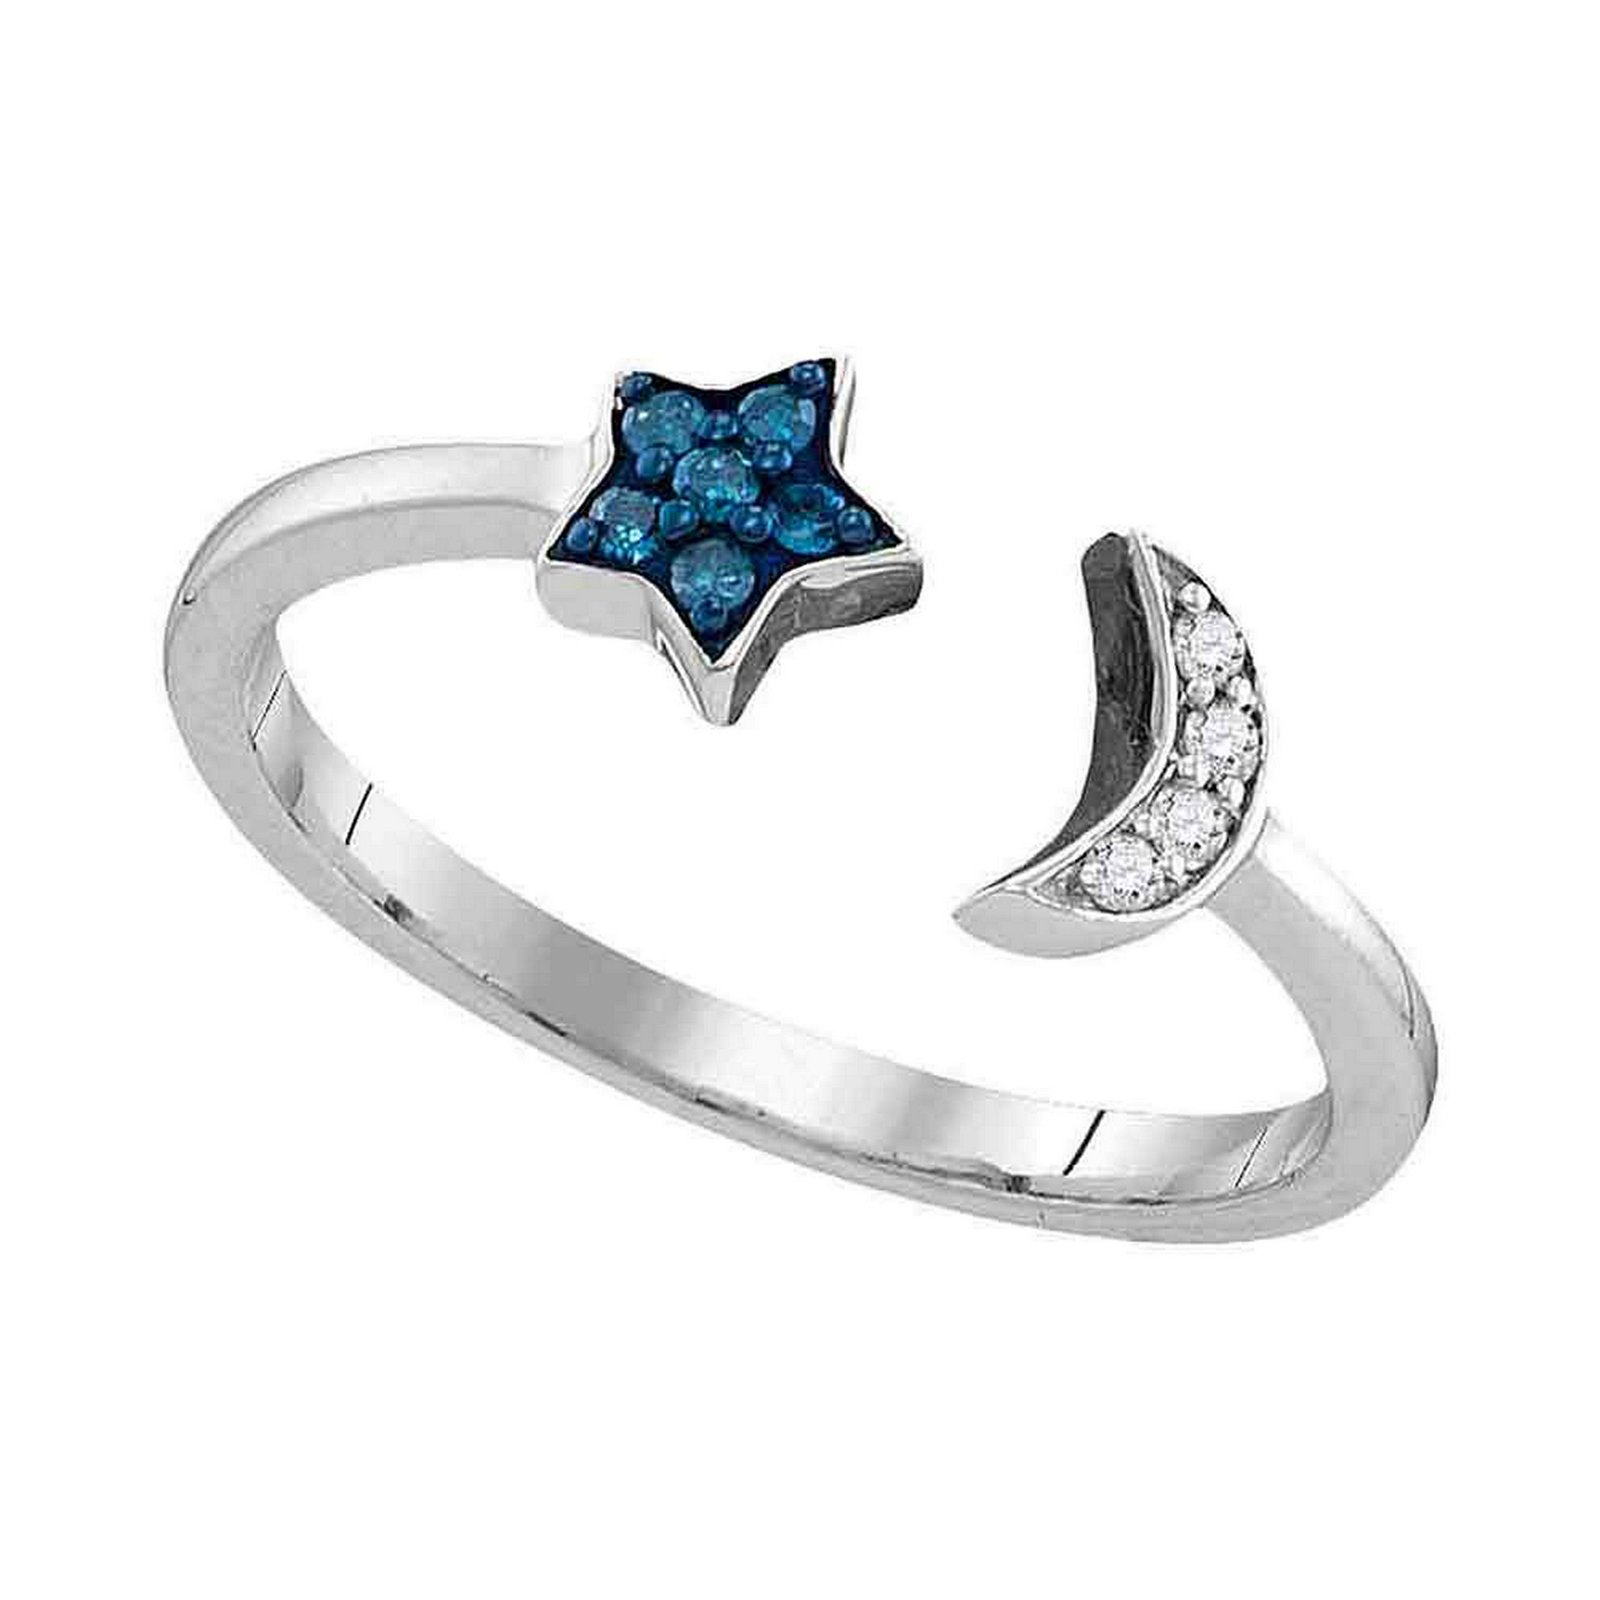 Blue Color Enhanced Diamond Star Crescent Moon Bisected